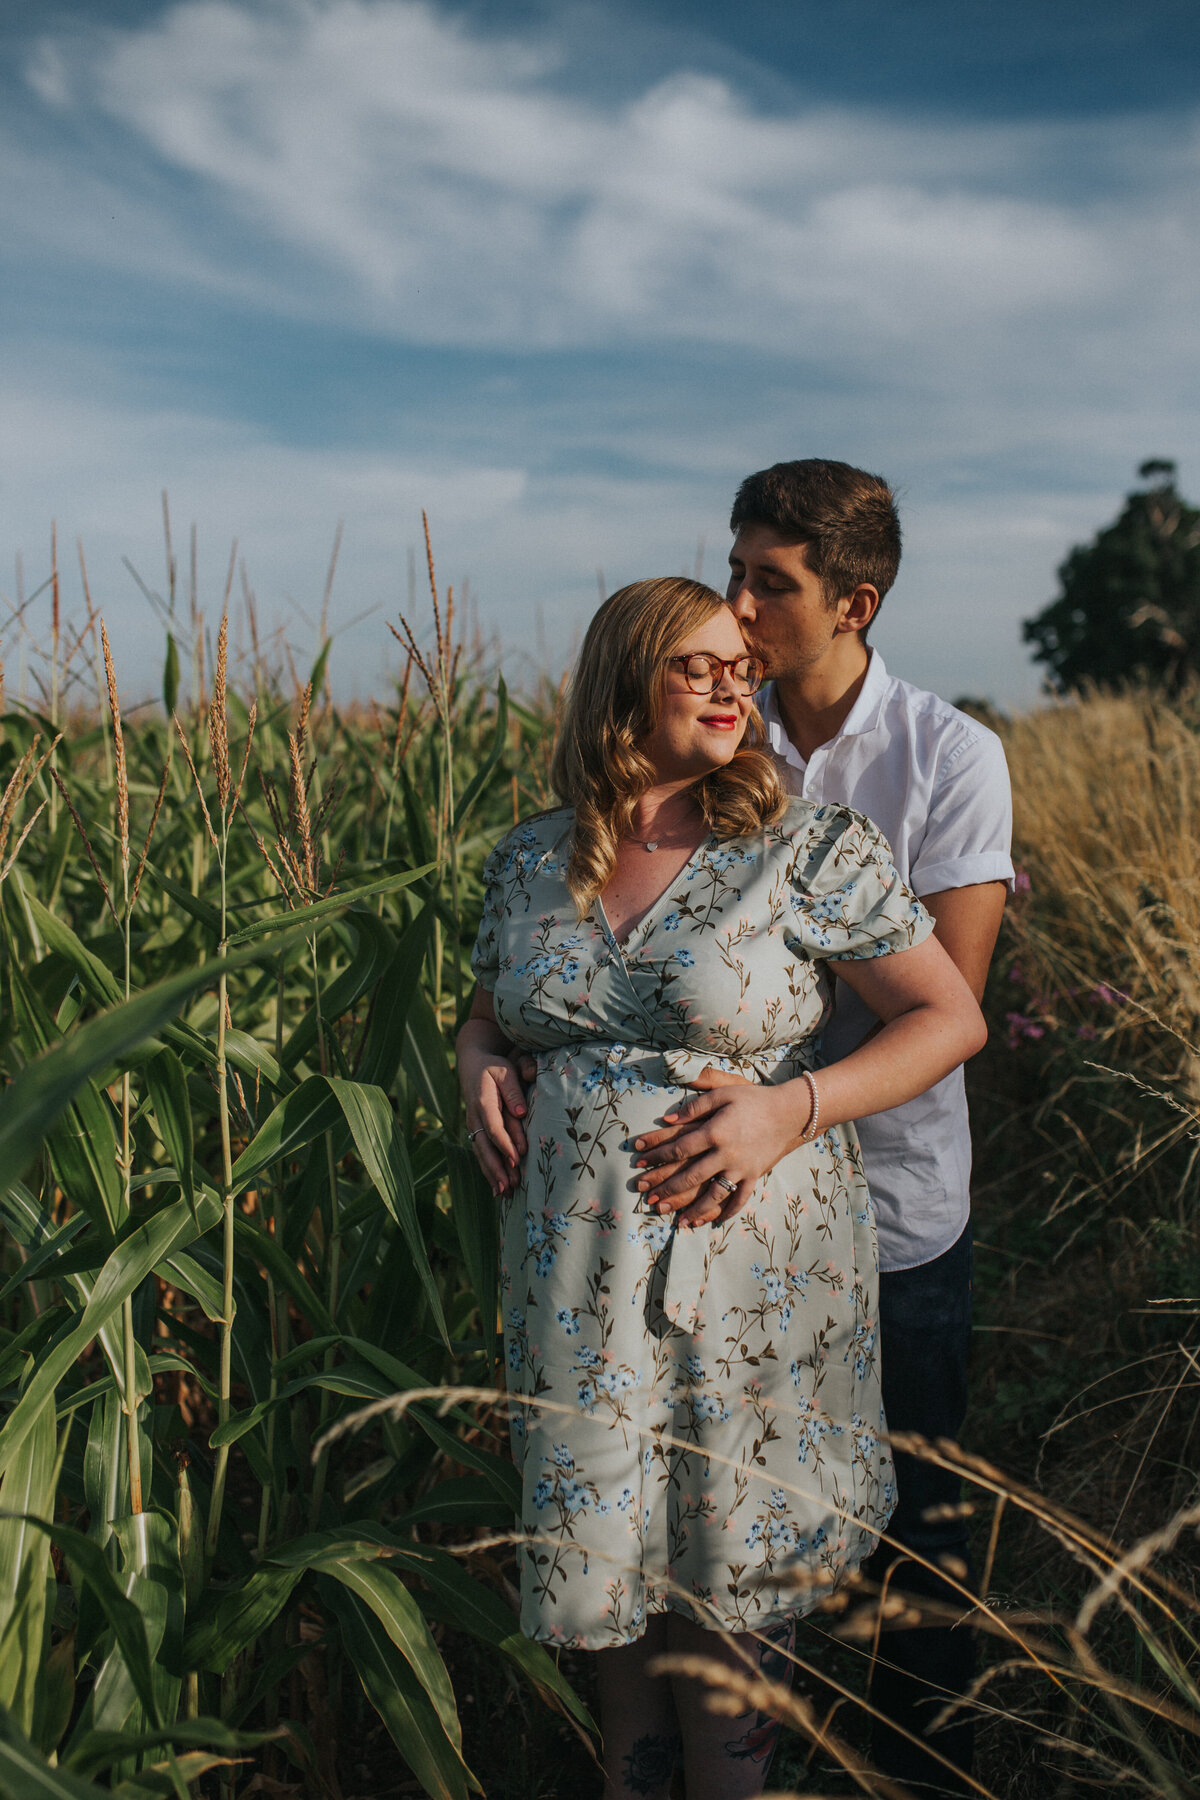 Maternity photoshoot in Coleshill, Warwickshire